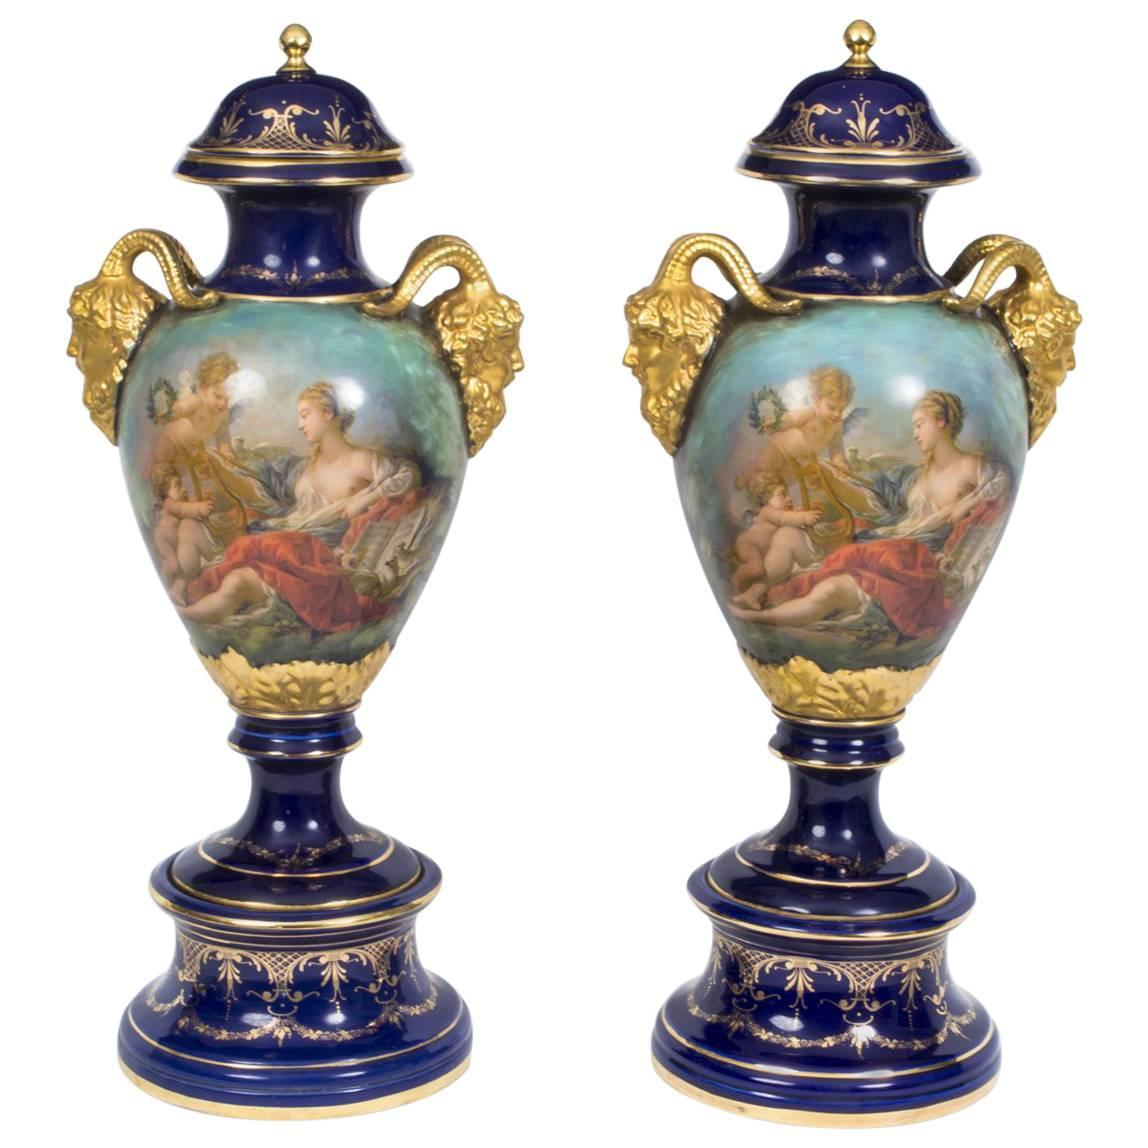 Pair of french sevres style louis xiv porcelain vases at 1stdibs reviewsmspy